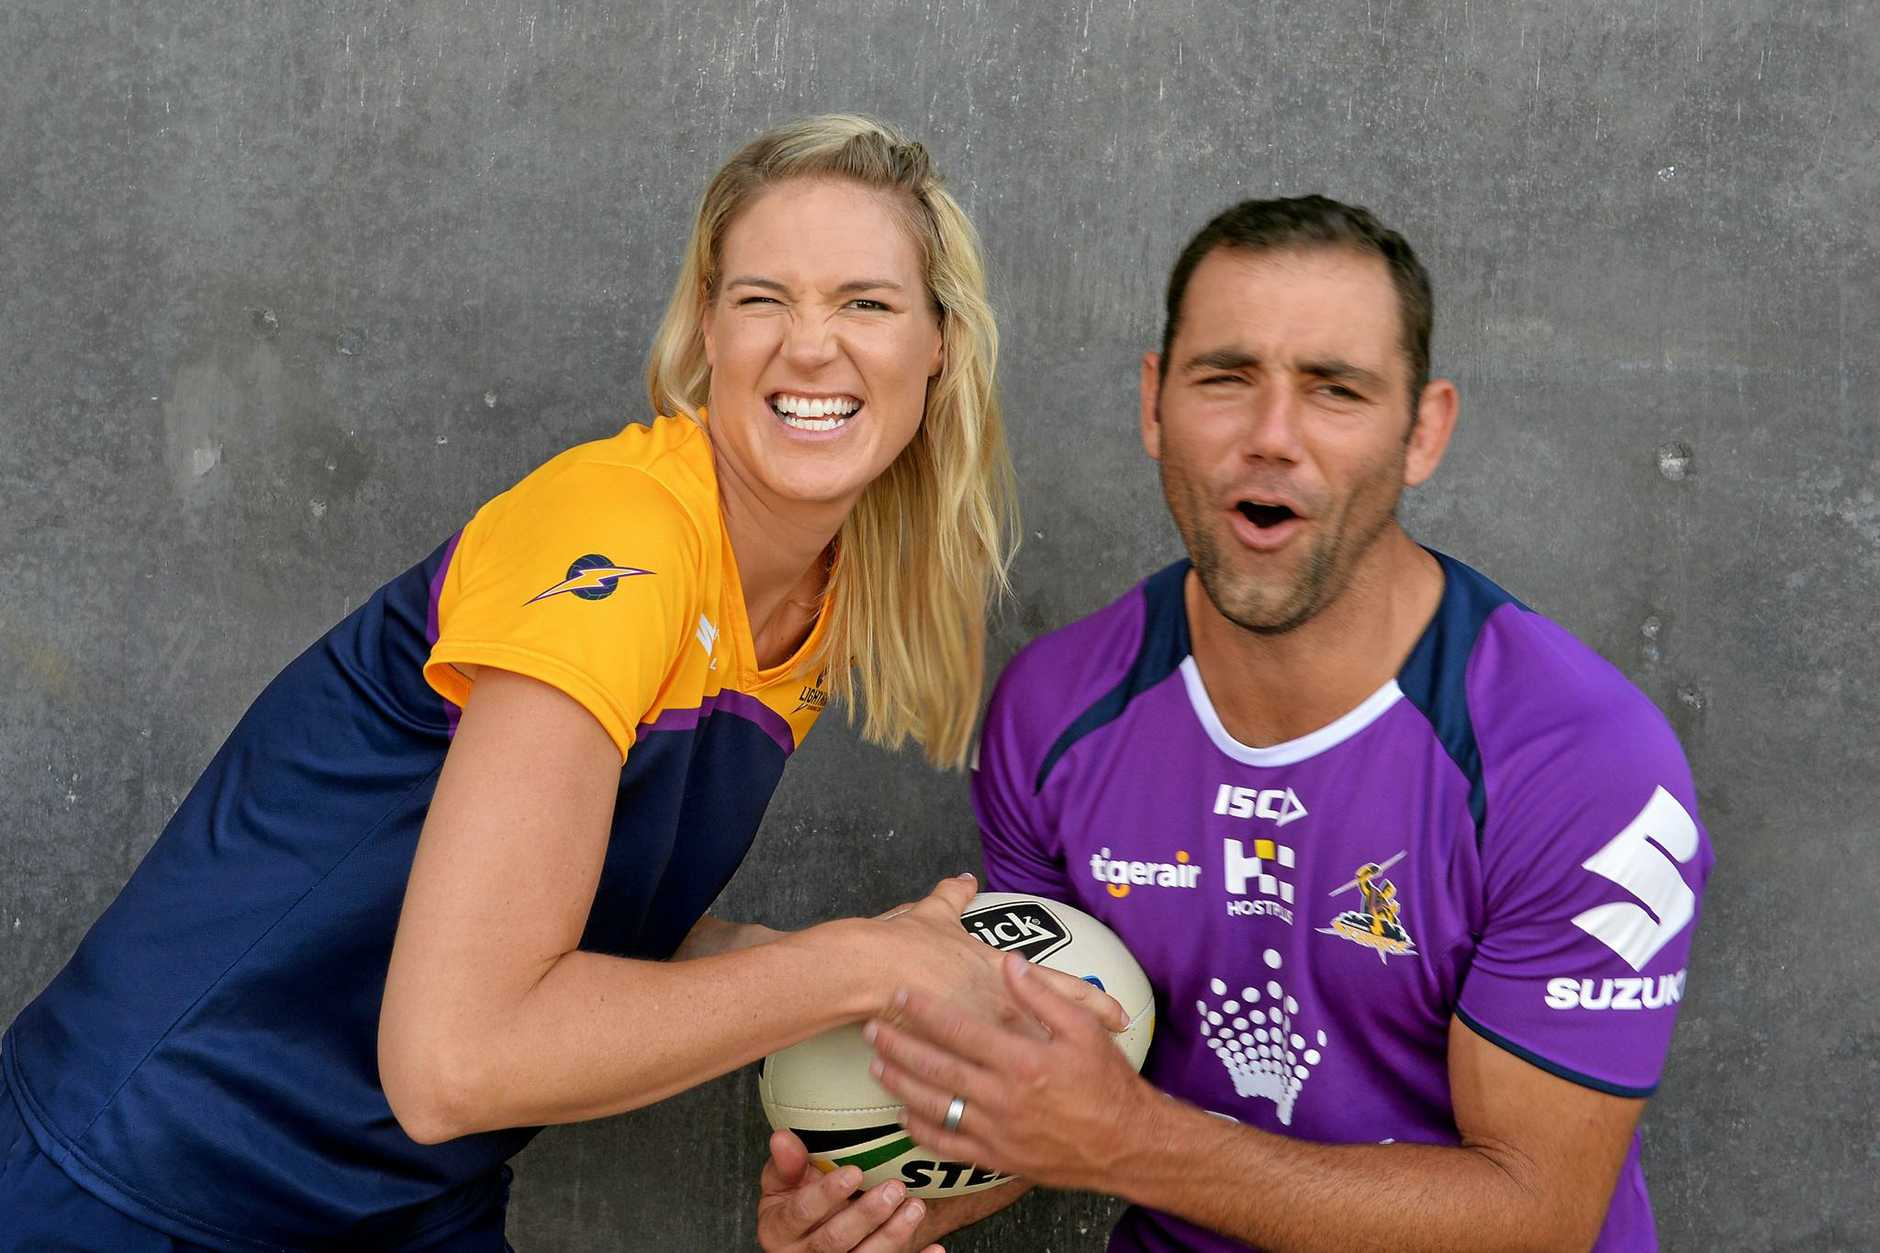 Storm opening training session at Sunshine Coast Stadium and press conference with Sunshine Caost Lightning Netball. Caitlin Bassett and Cameron Smith.